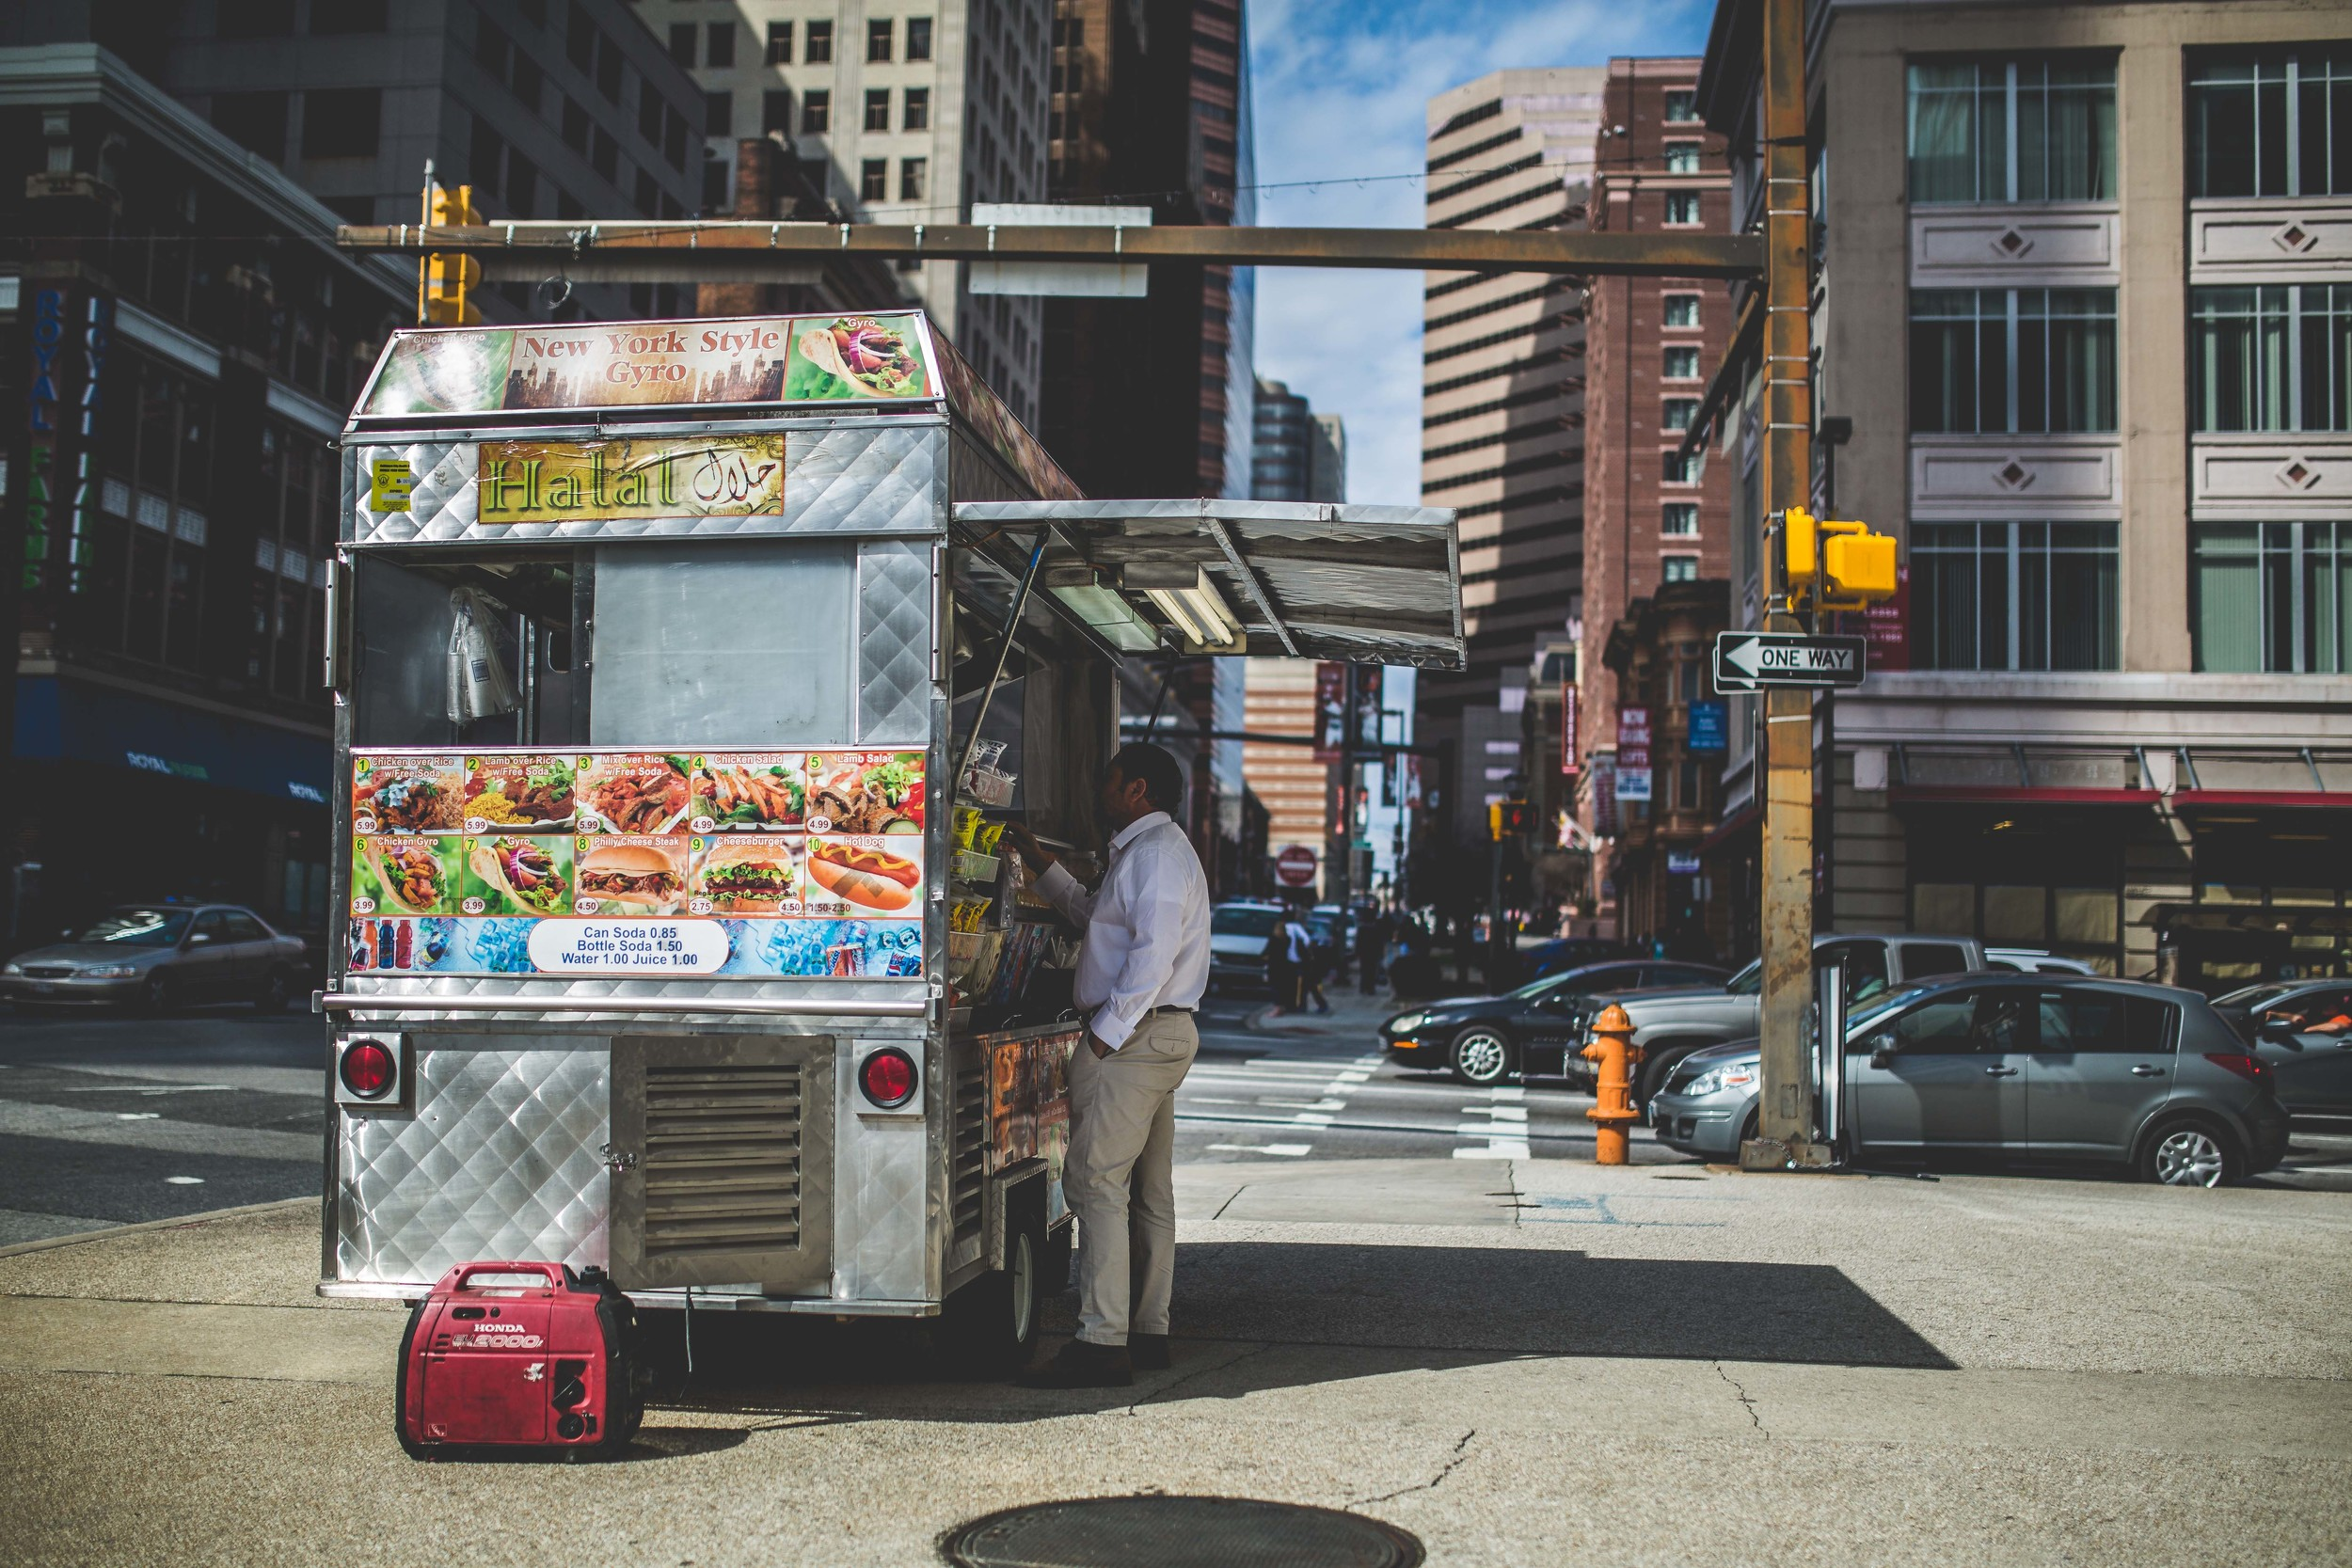 Downtown Baltimore Food Stand.jpg